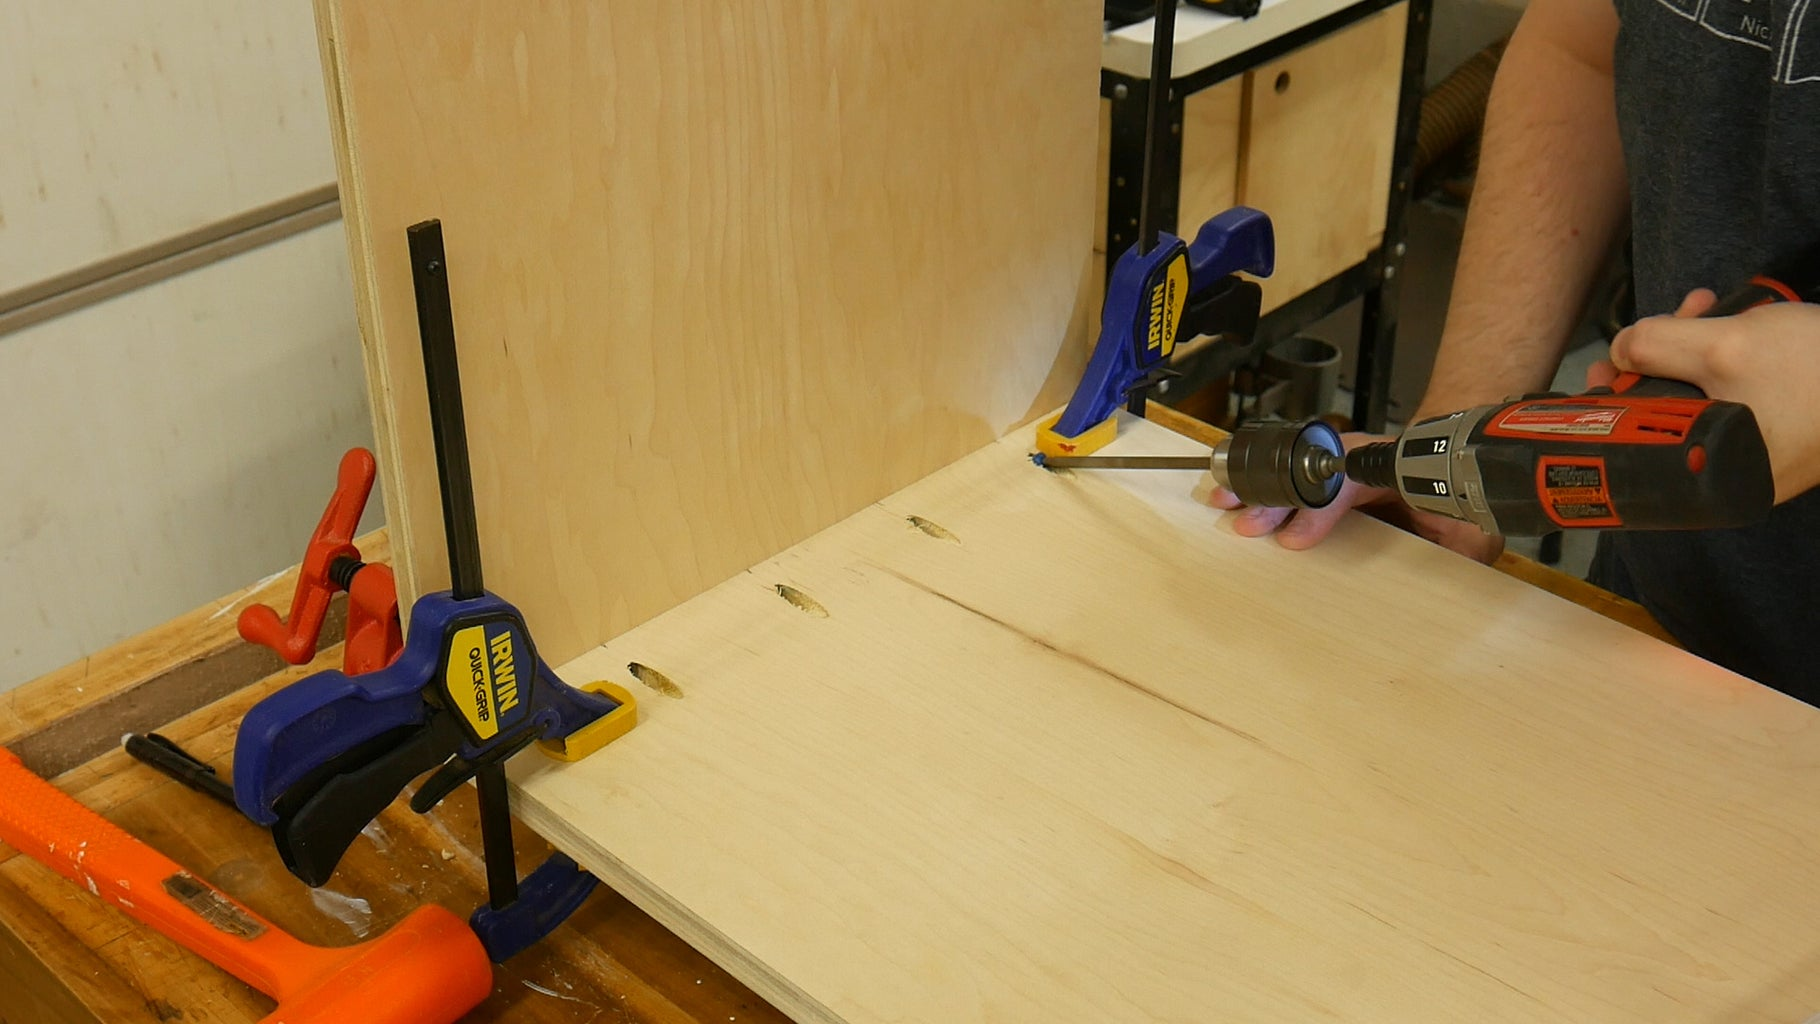 Drill Pocket Hole Joinery for the Legs